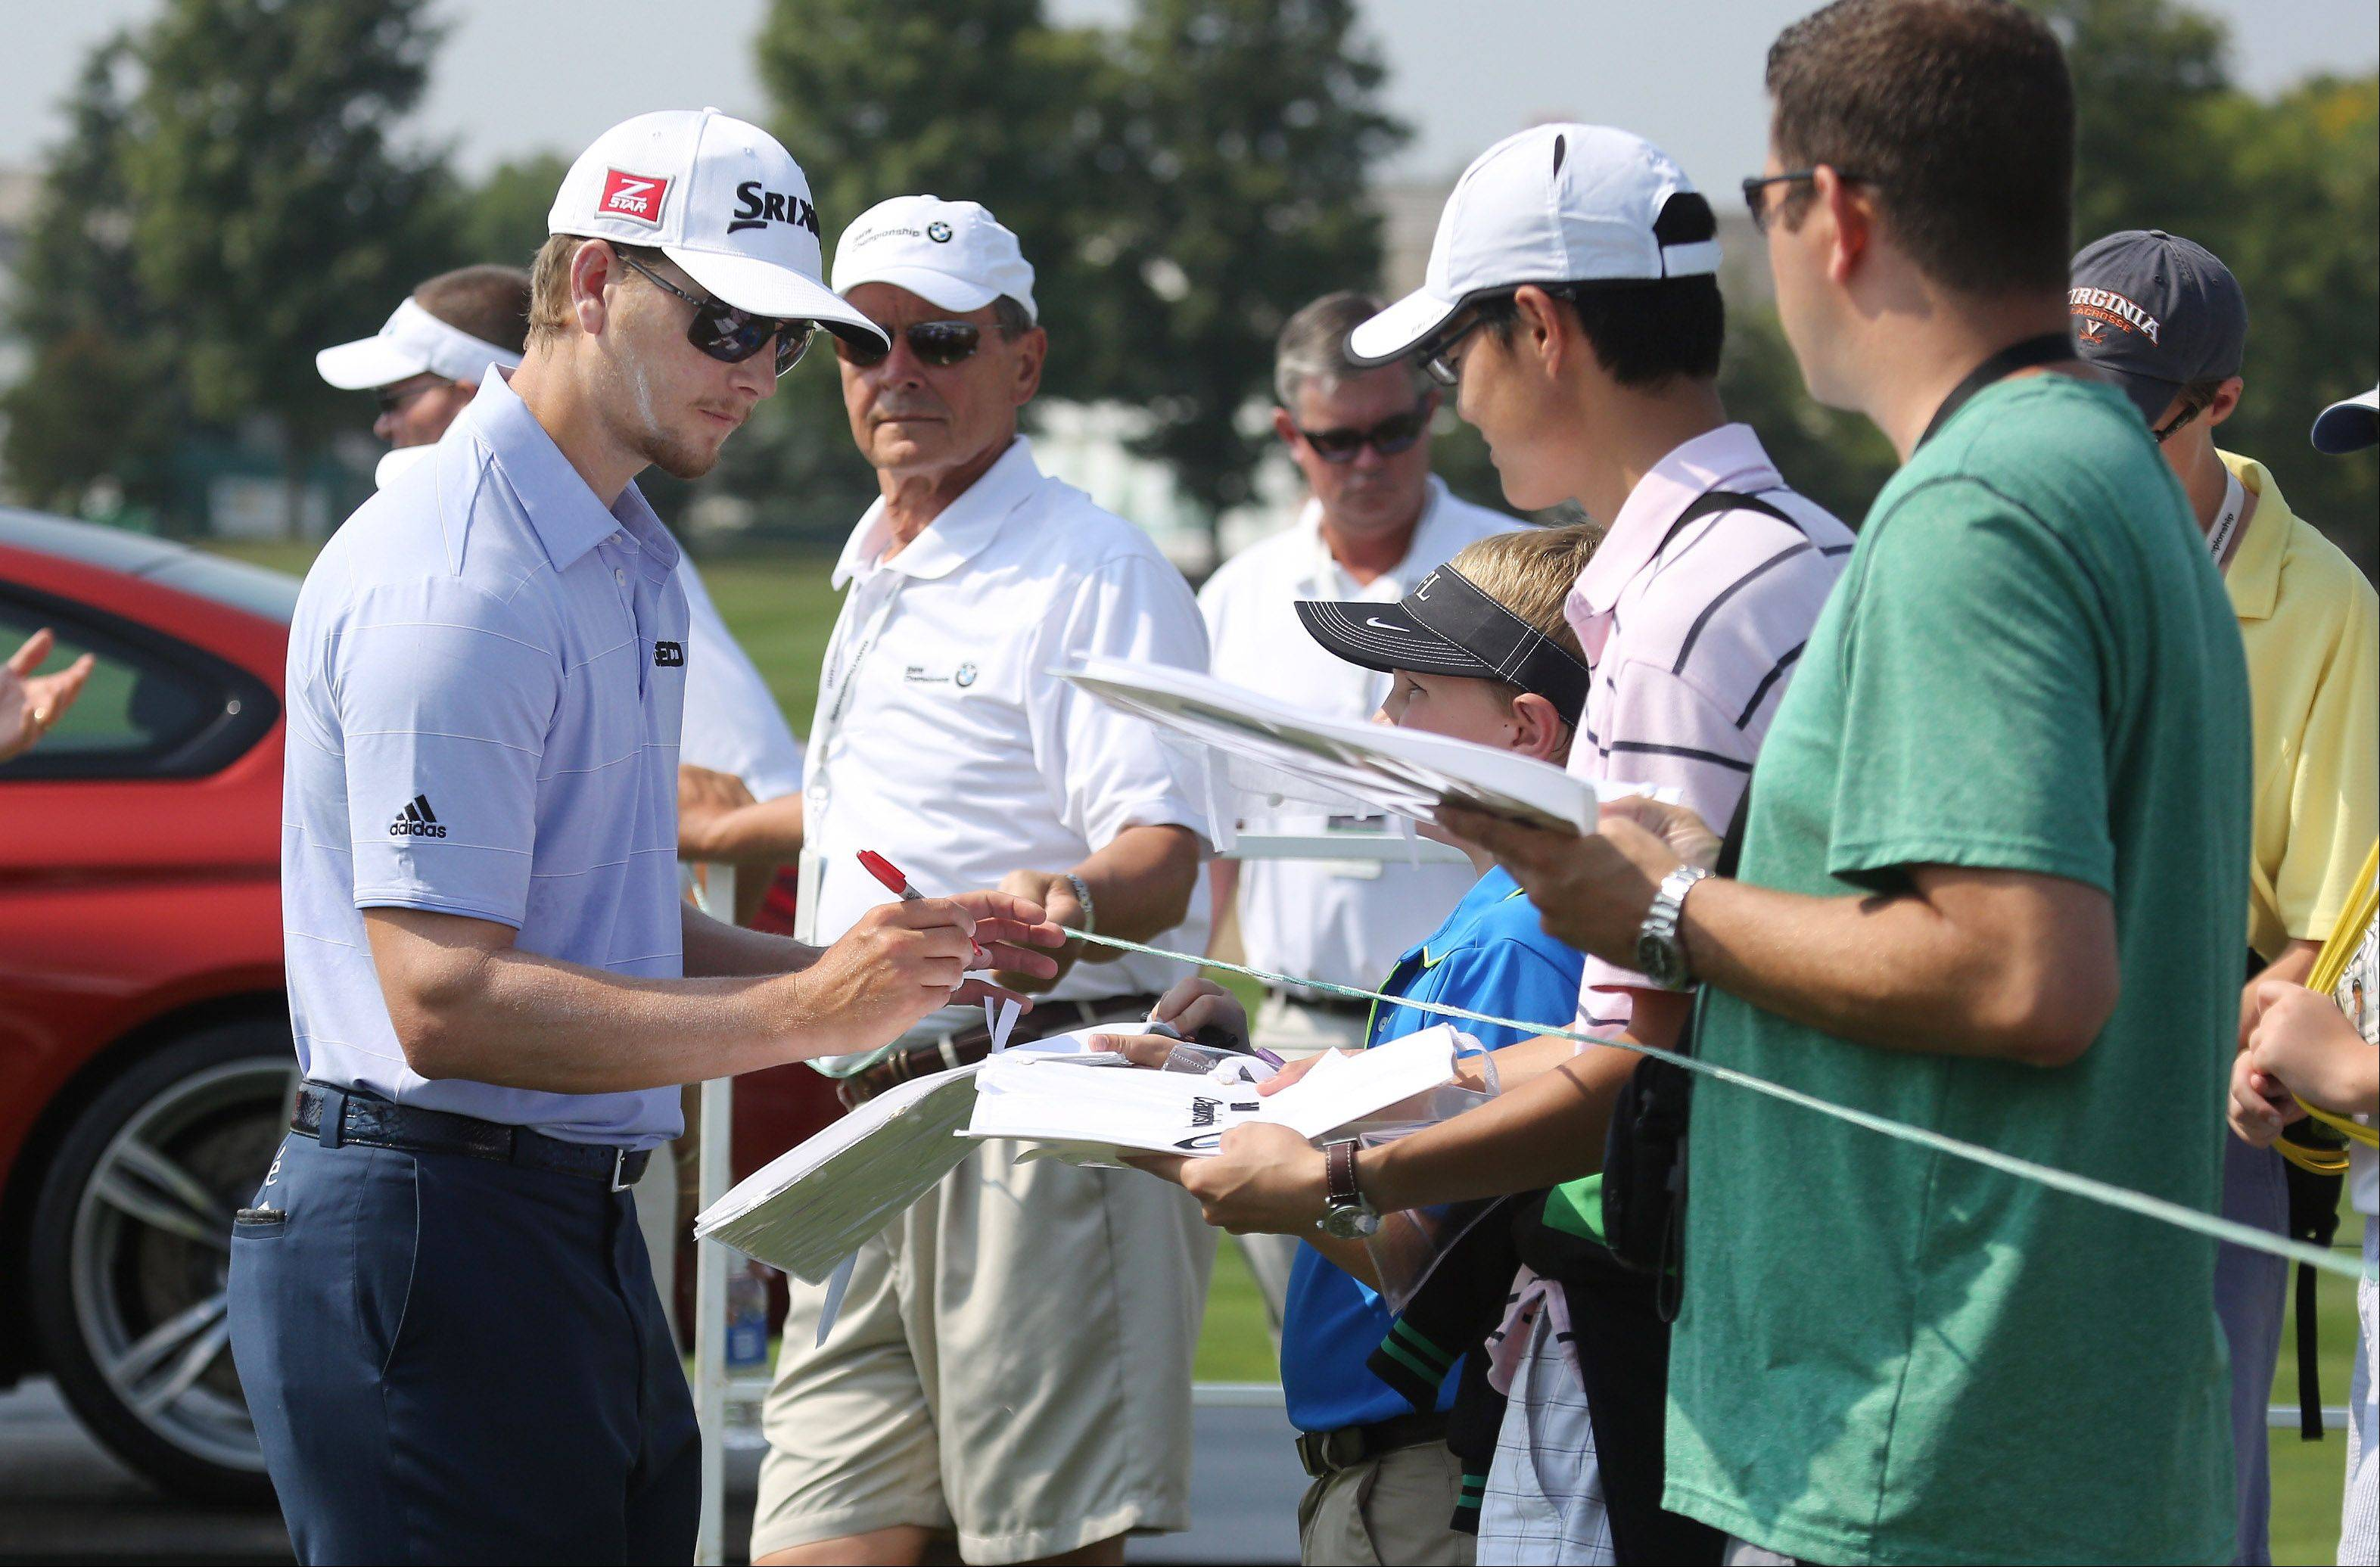 Professional golfer Chris Stroud signs autographs Monday.